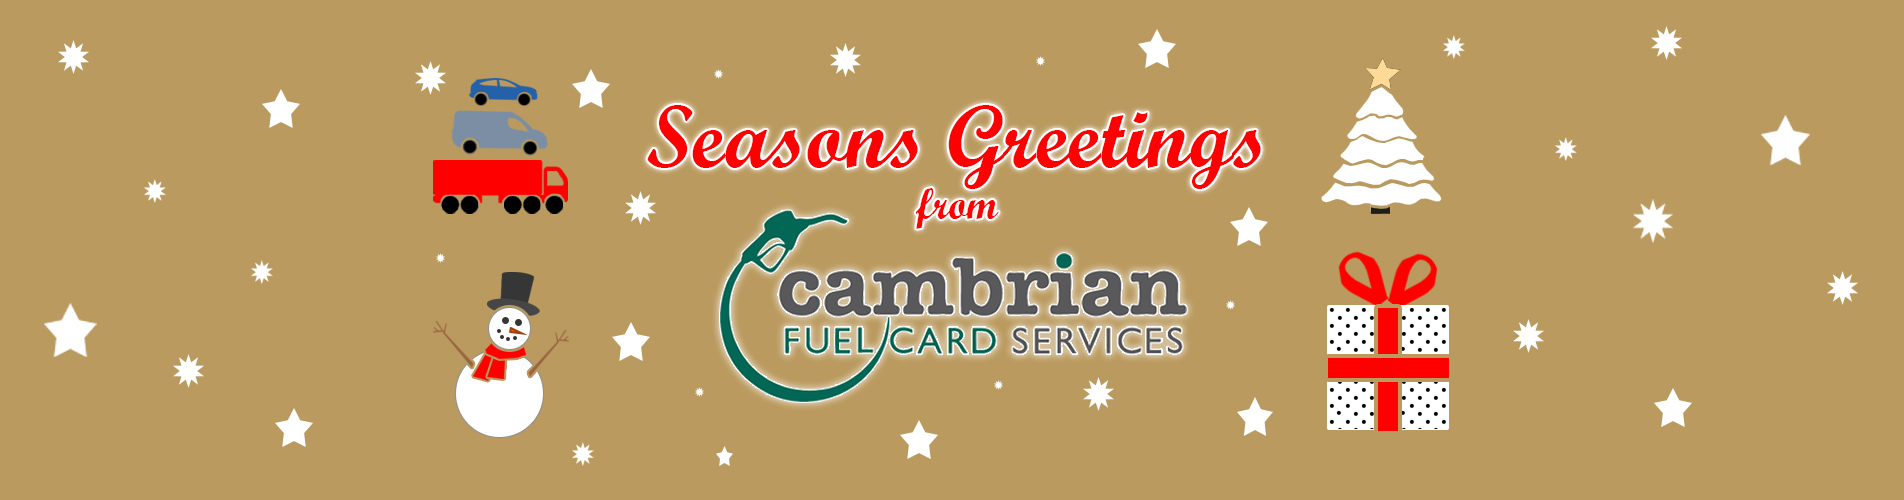 seasons greetings from cambrian fuel cards services